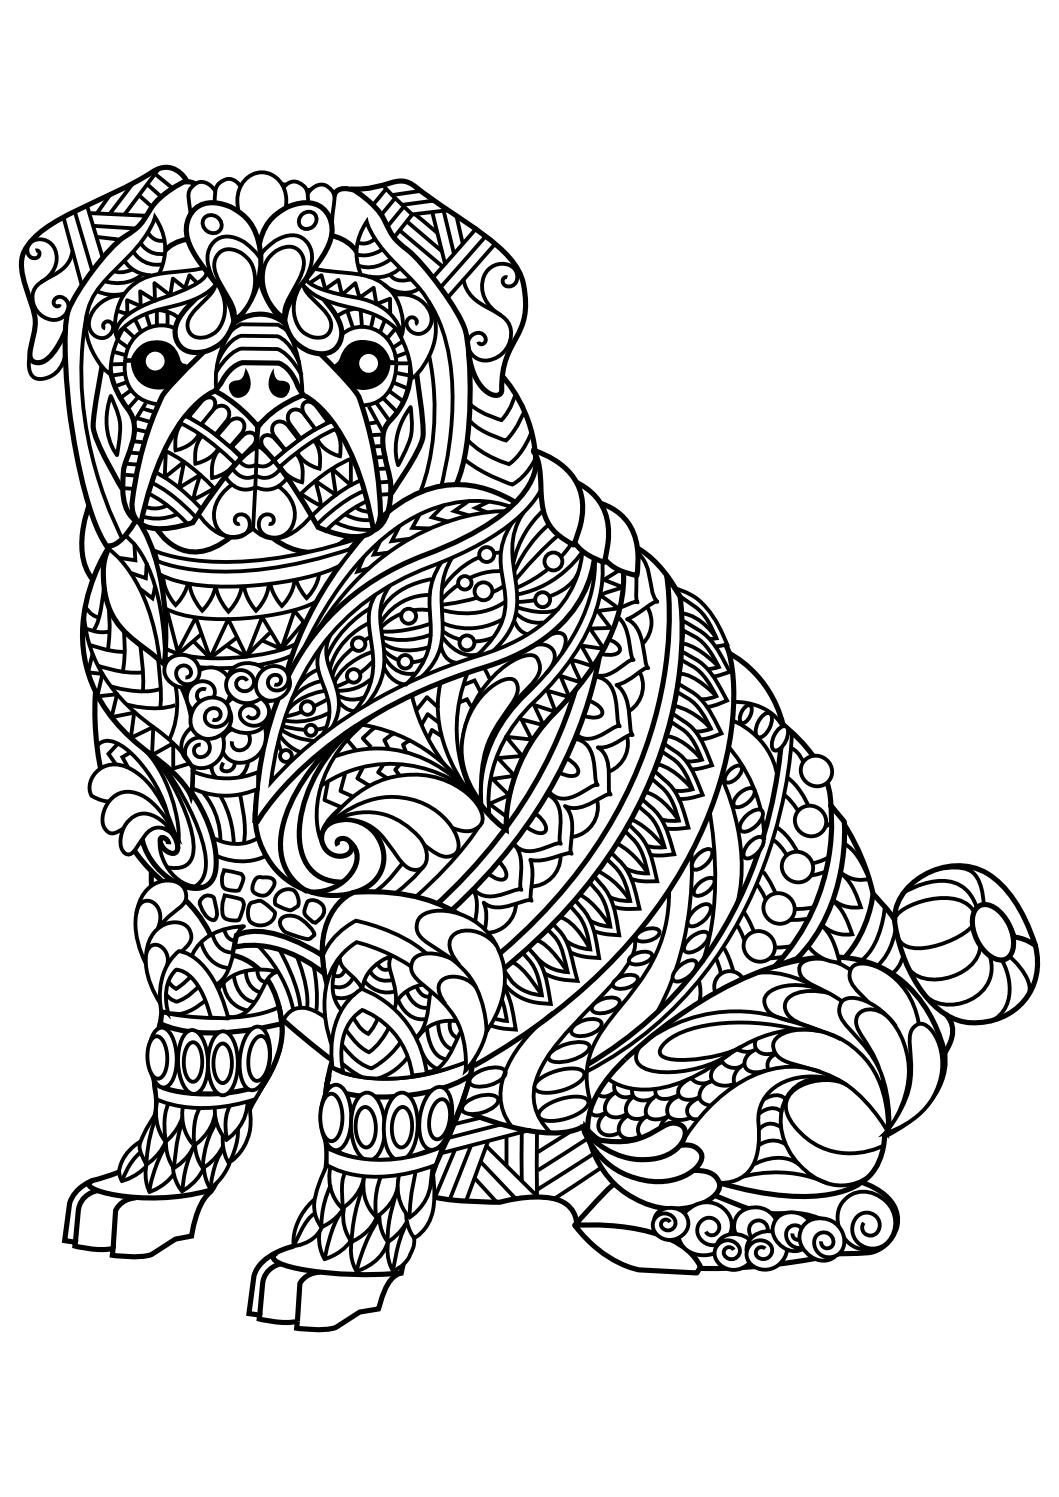 animal coloring pages pdf coloring animals horse coloring pages mandala coloring pages. Black Bedroom Furniture Sets. Home Design Ideas